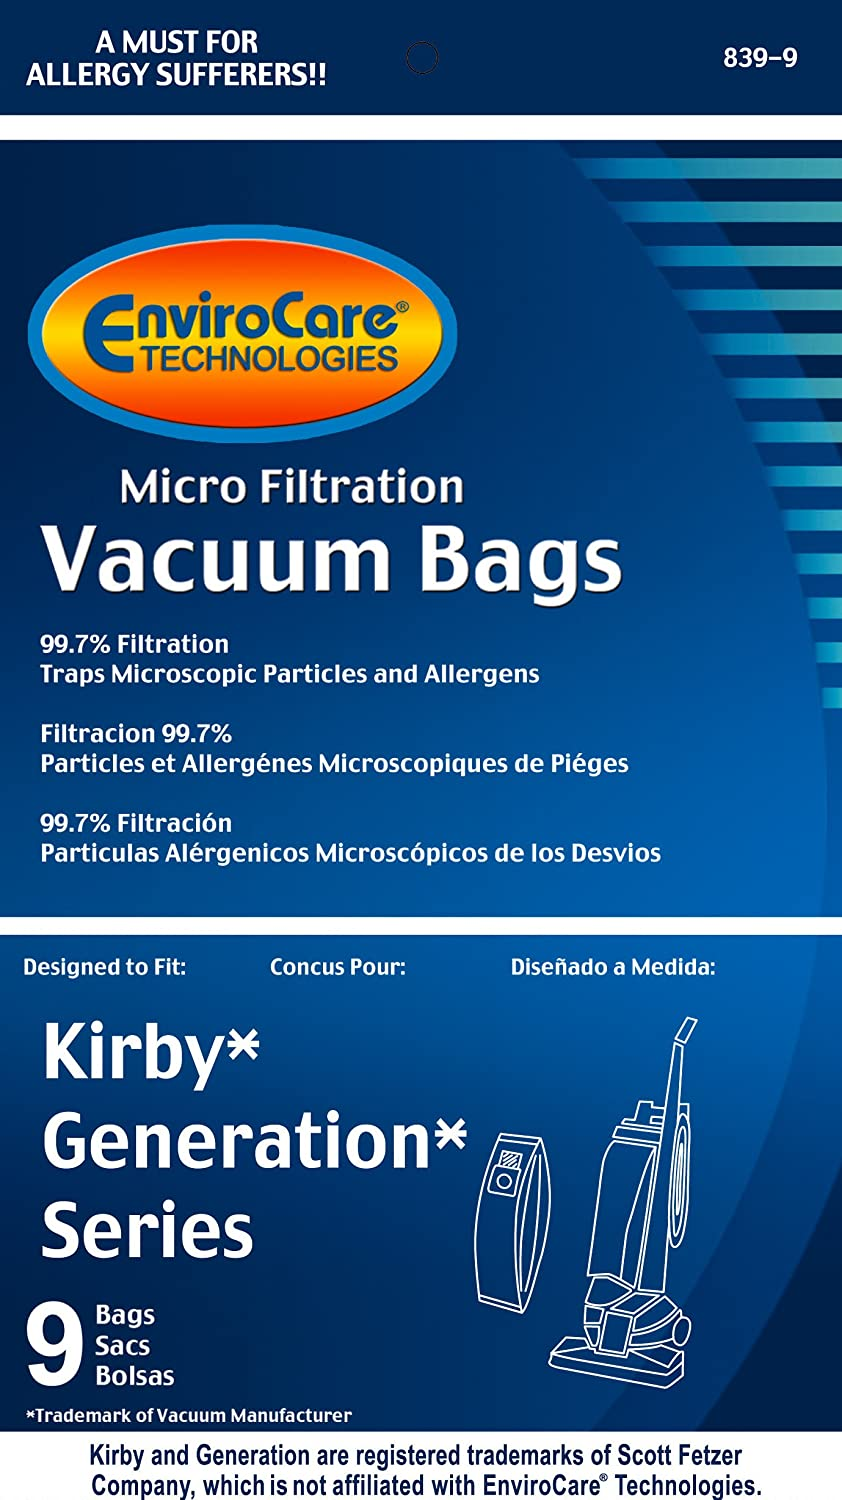 27 KIRBY GENERATION MICROFILTRATION VACUUM SWEEPER BAGS designed to fit KIRBY by envirocare Generation 4 5 6 /& UltimateG